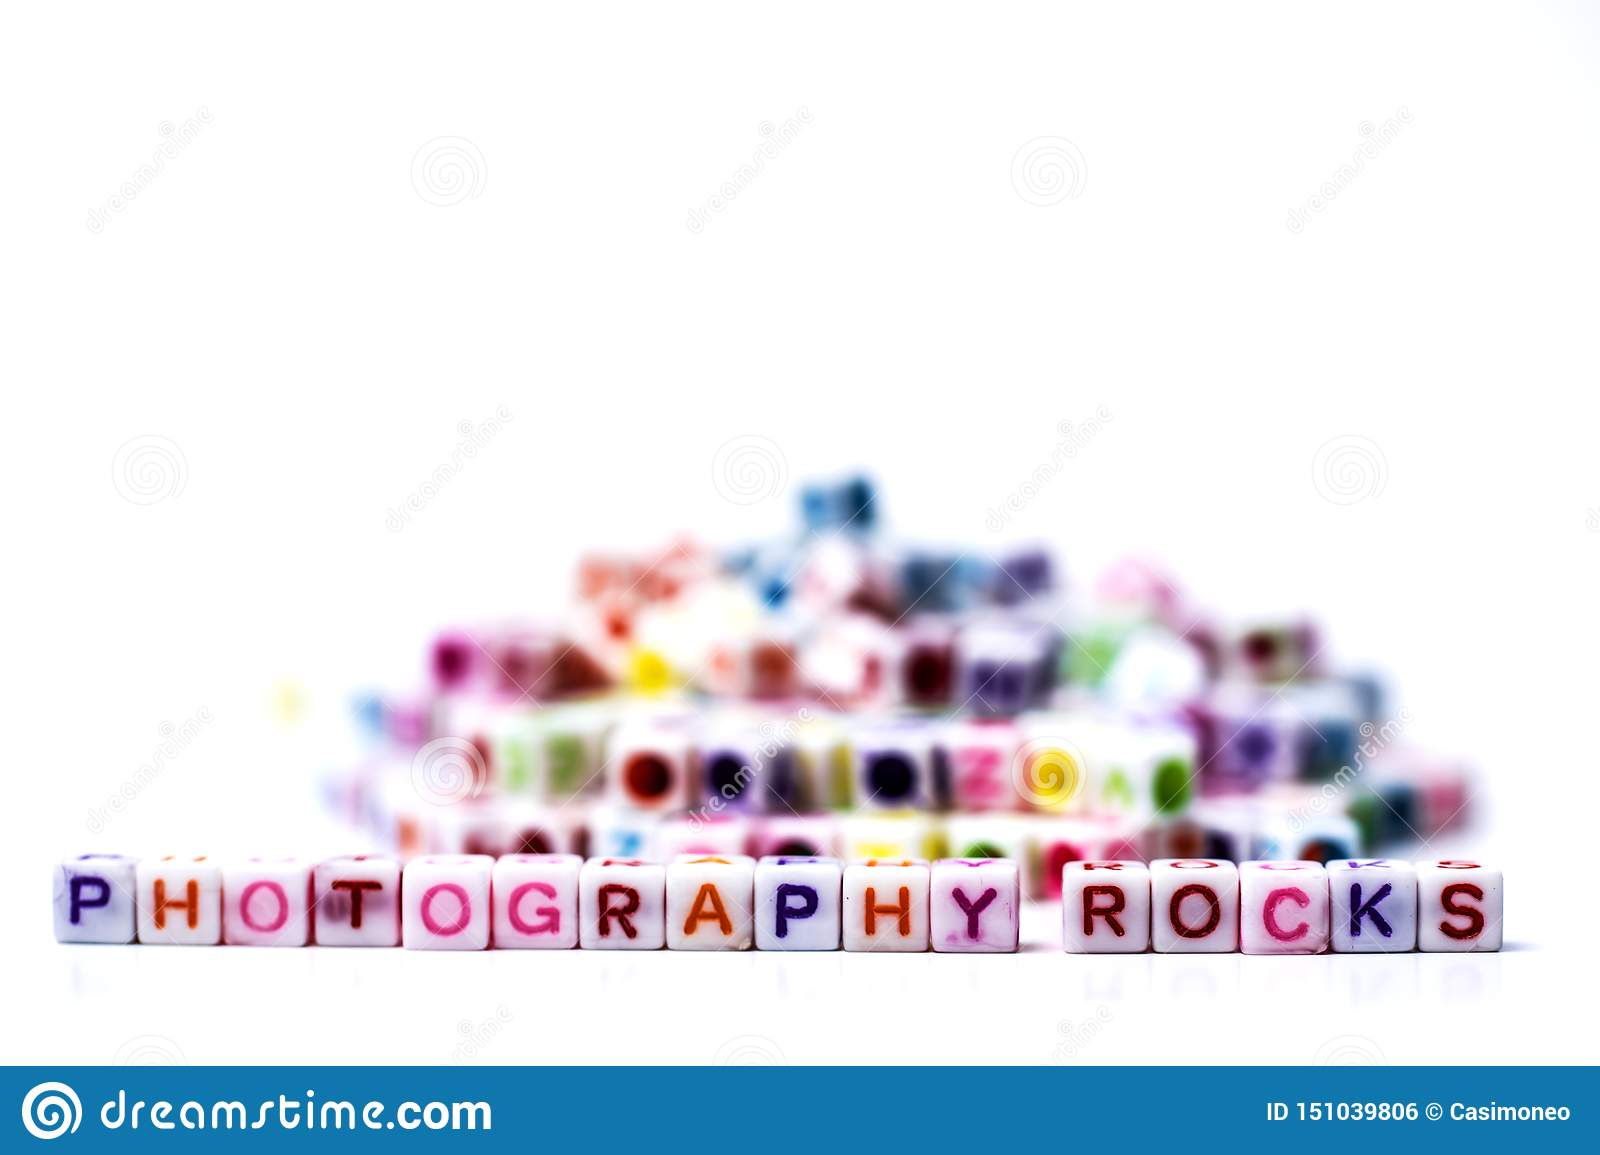 Photography Rocks - conceptual approach using plastic letter tiles forming writing the two words Photography and Rocks